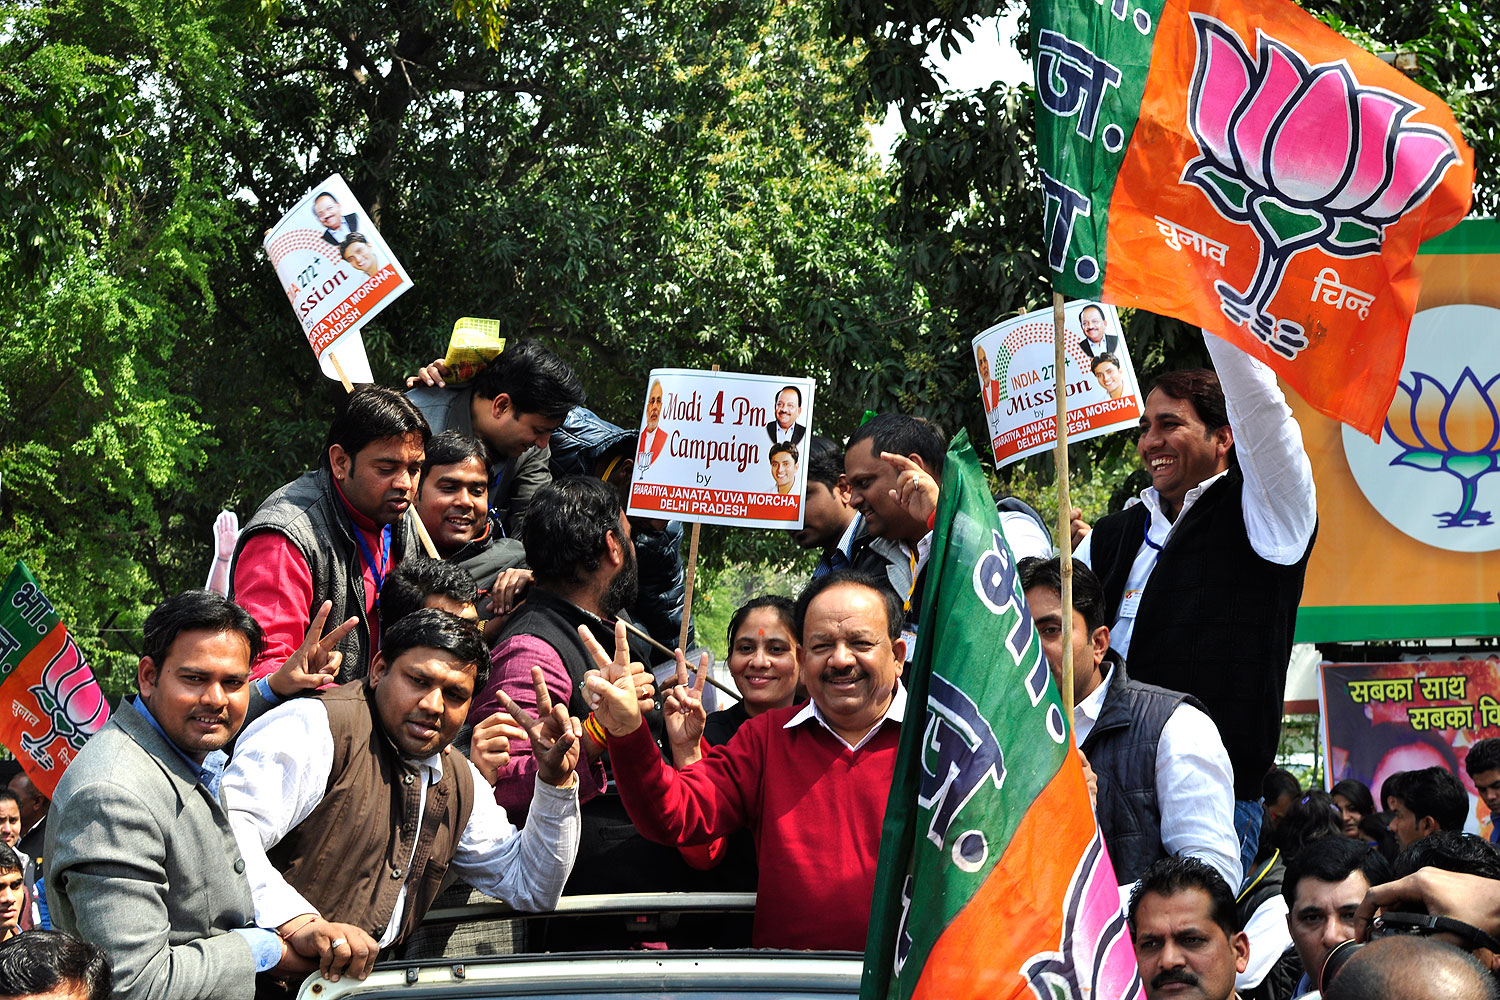 BJP Delhi president Harsh Vardhan launches a rally promoting Narendra Modi as the prime-ministerial candidate at the forthcoming Lok Sabha elections at the BJP office in New Delhi on March 4, 2014